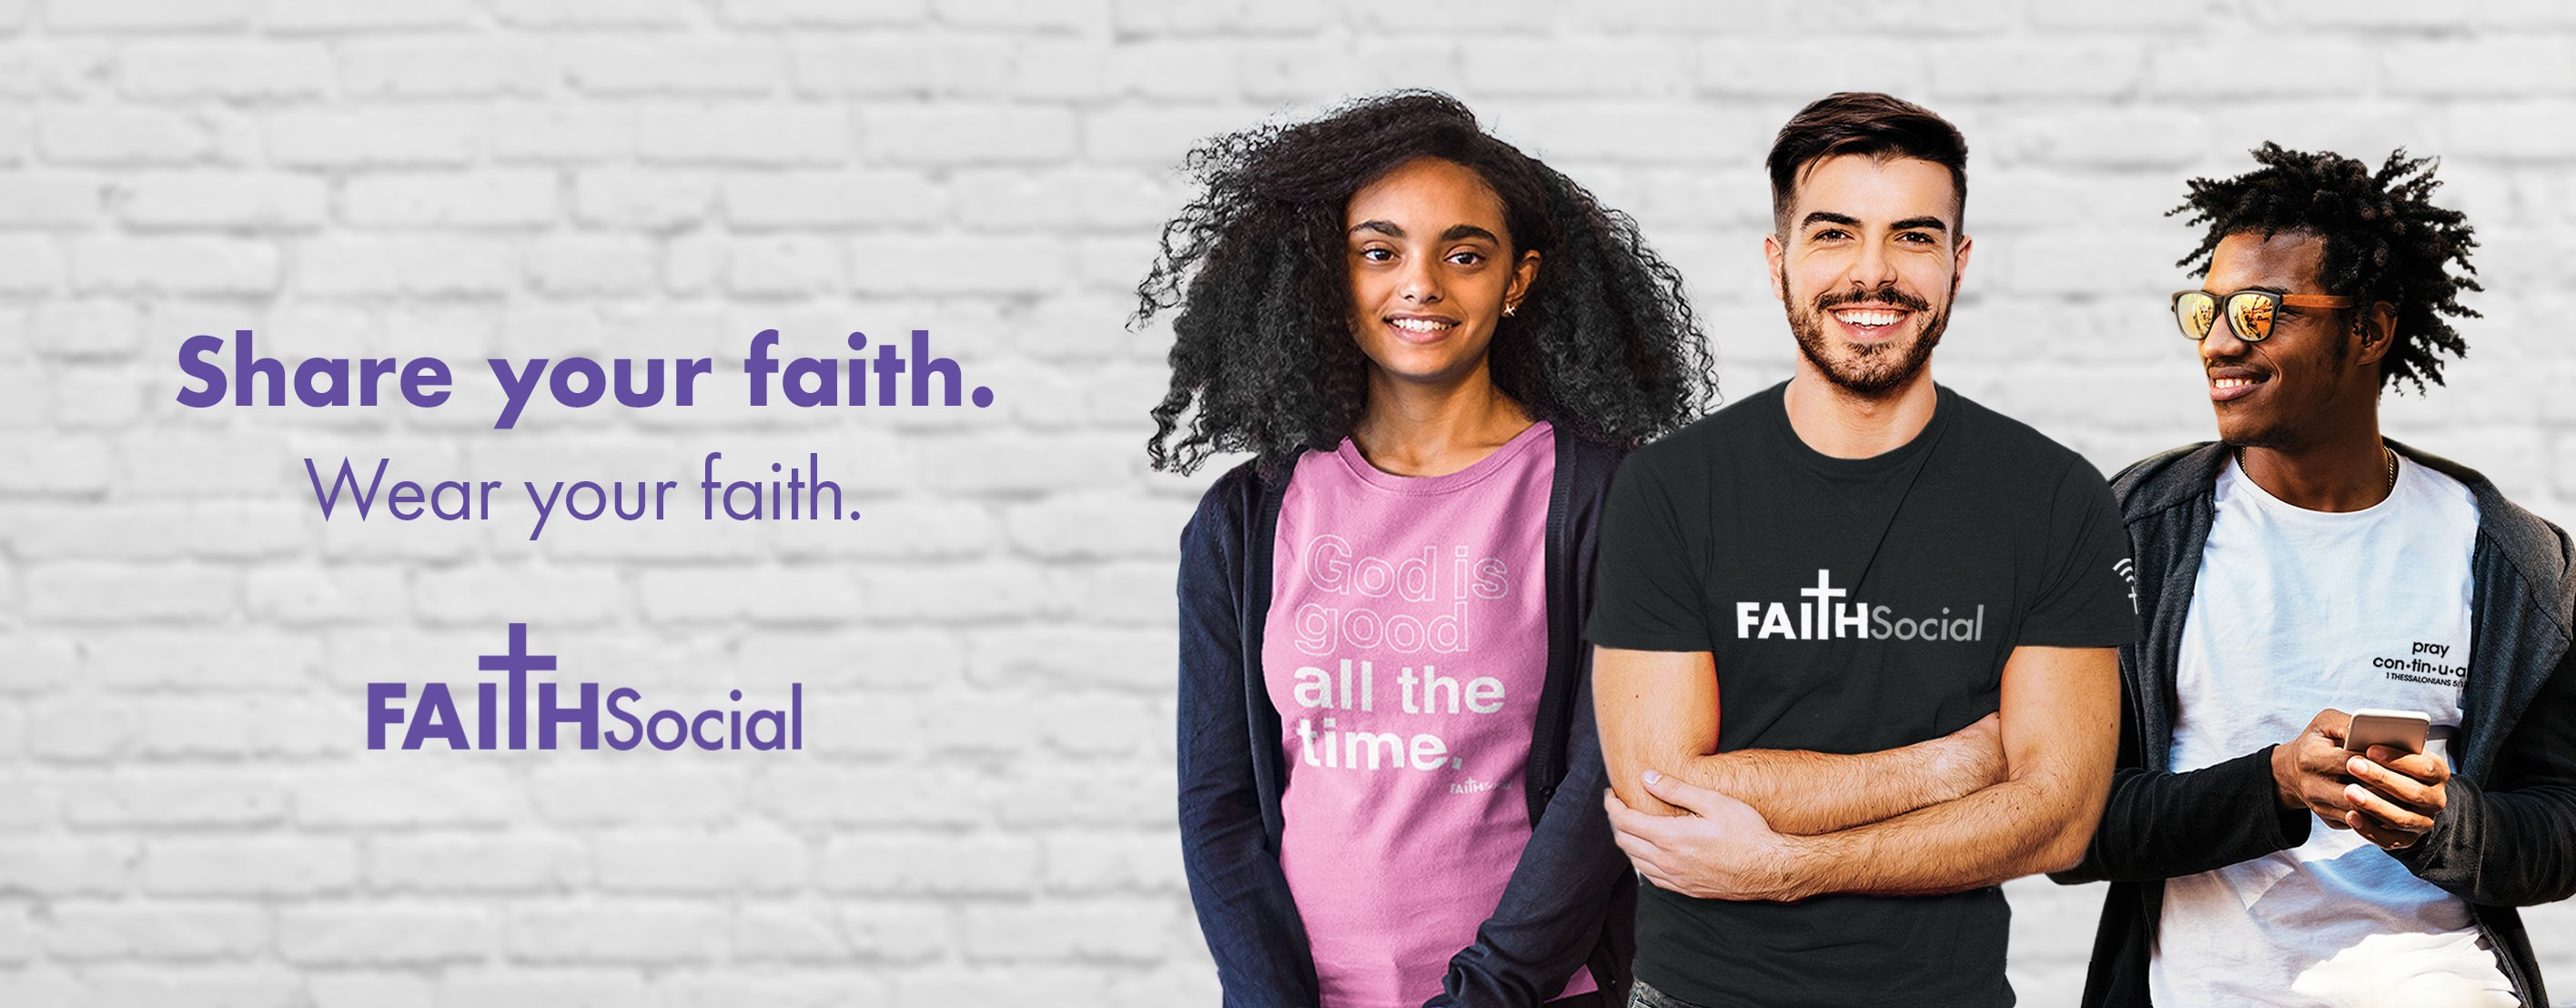 Share your faith. Wear your faith.